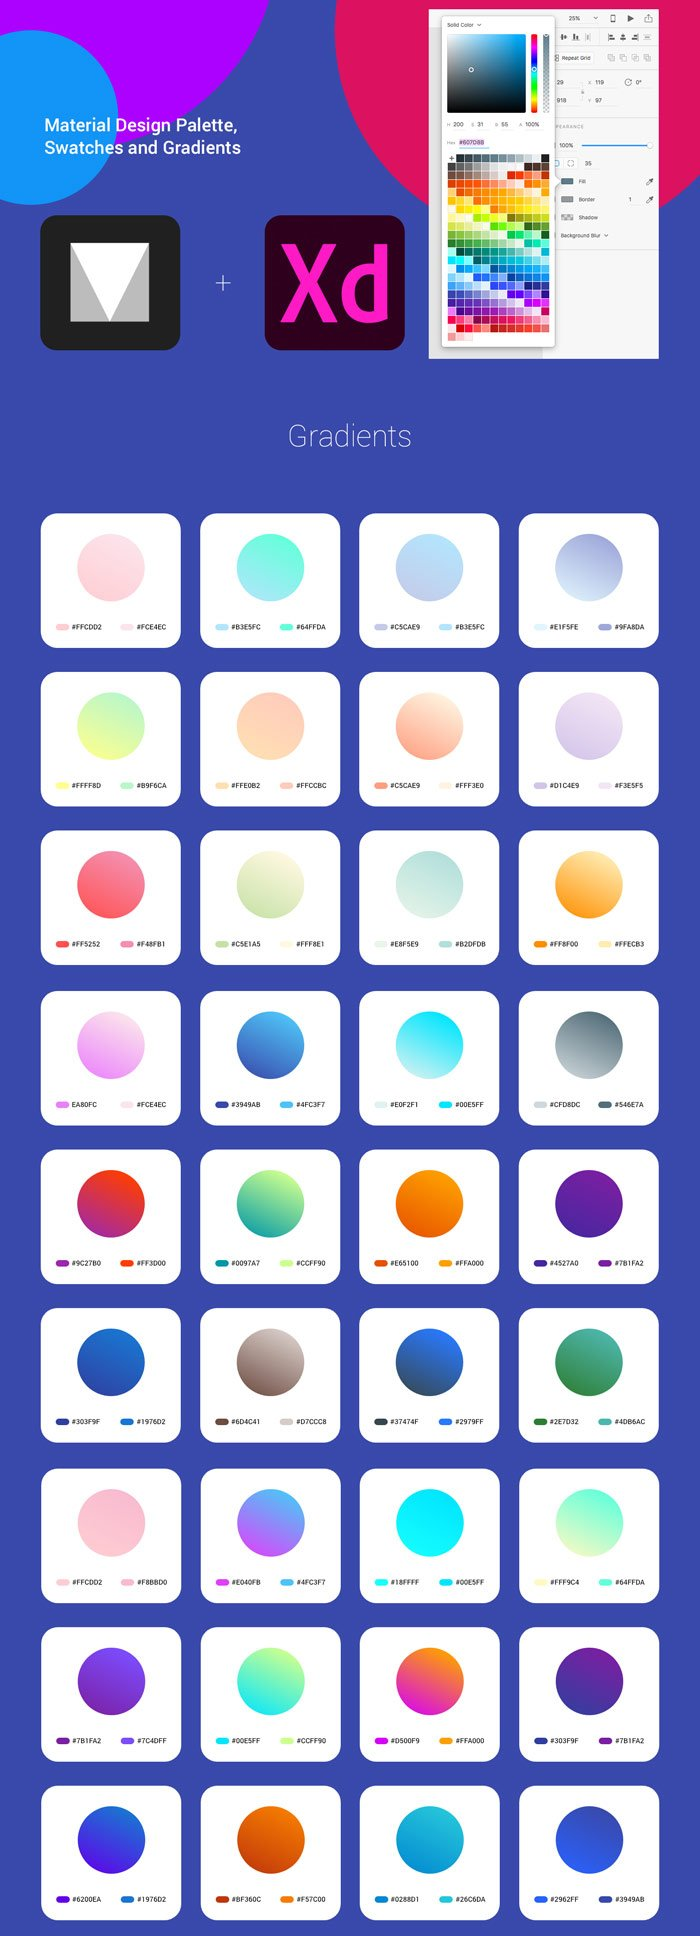 material xd palettes gradients